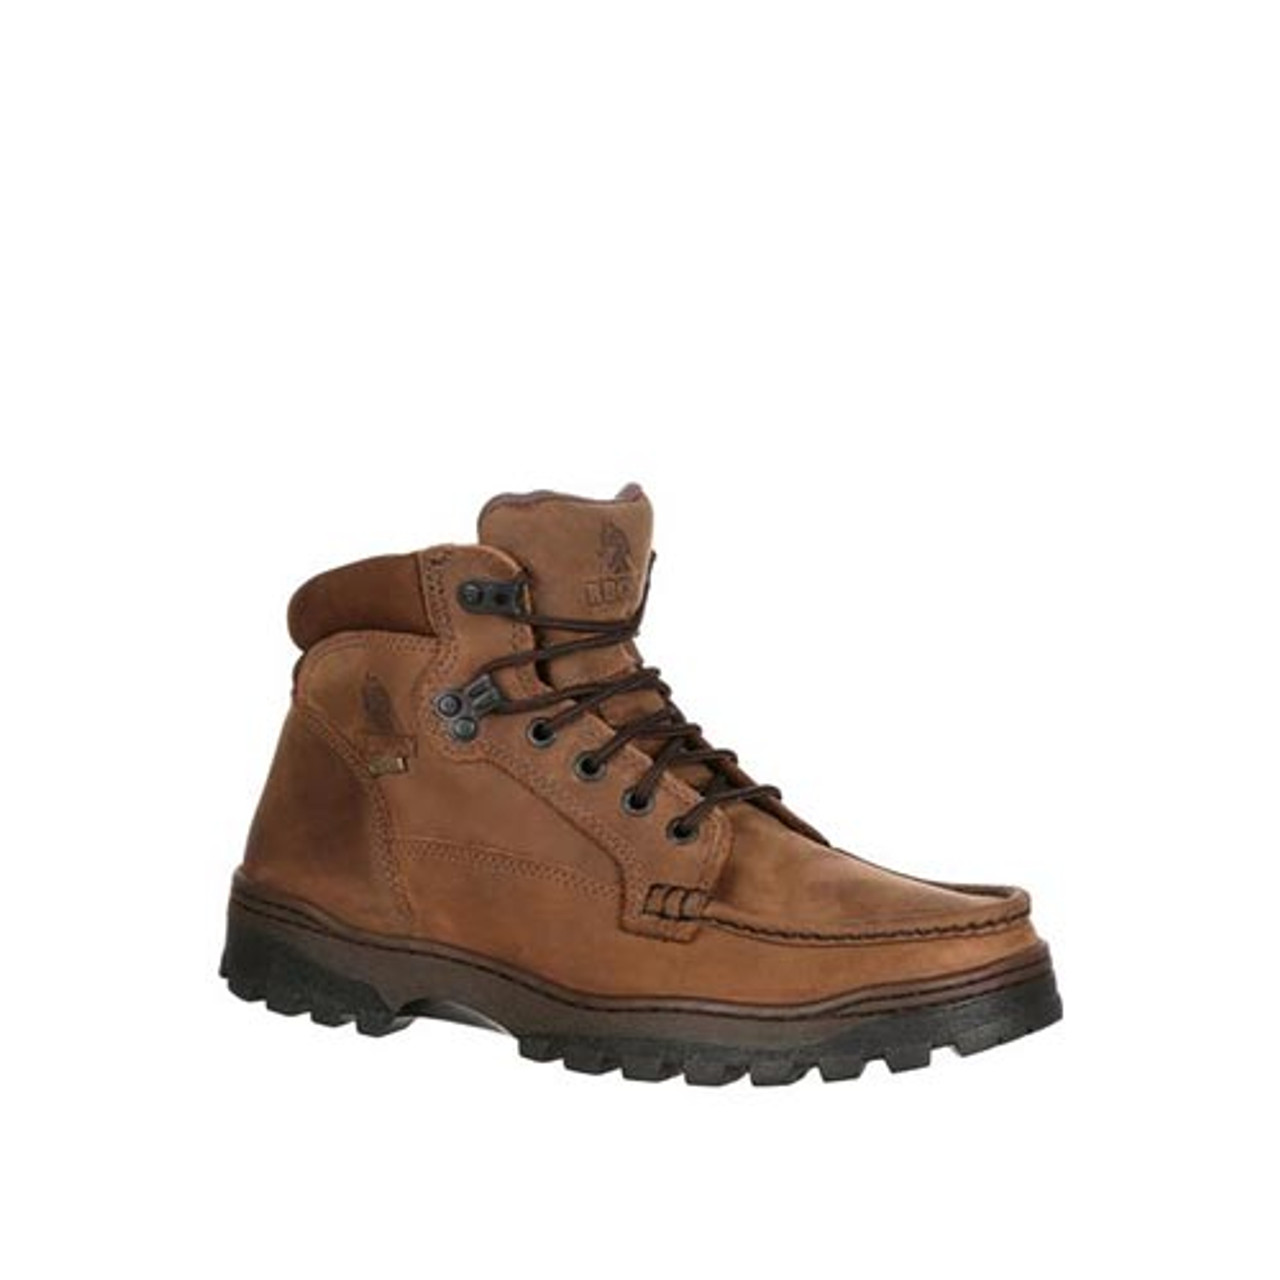 Rocky Outback GORE-TEX